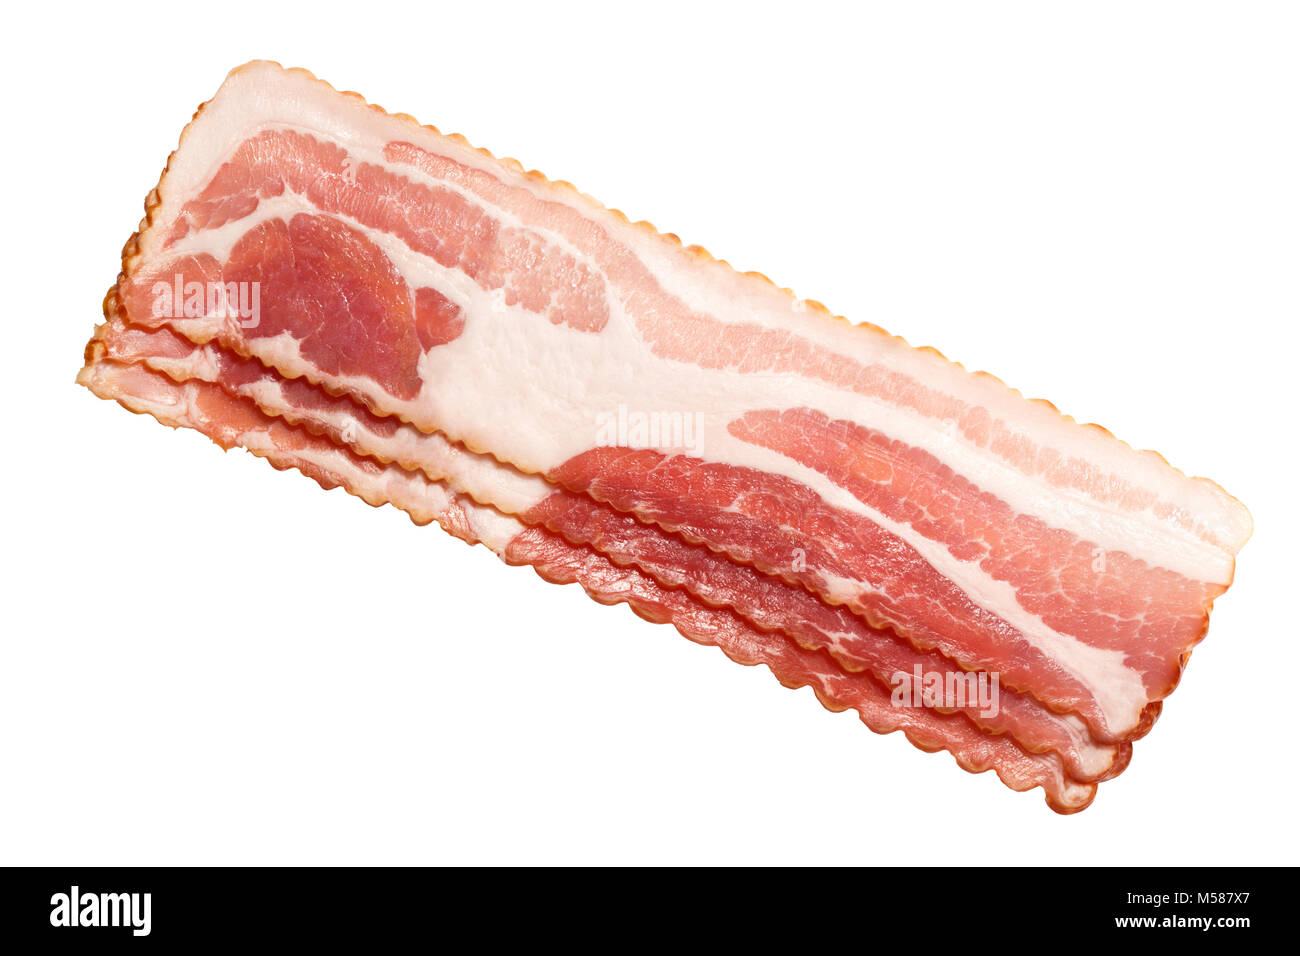 Bacon strips, uncooked, profiled. Top view, clipping path: https://goo.gl/AJeyru - Stock Image